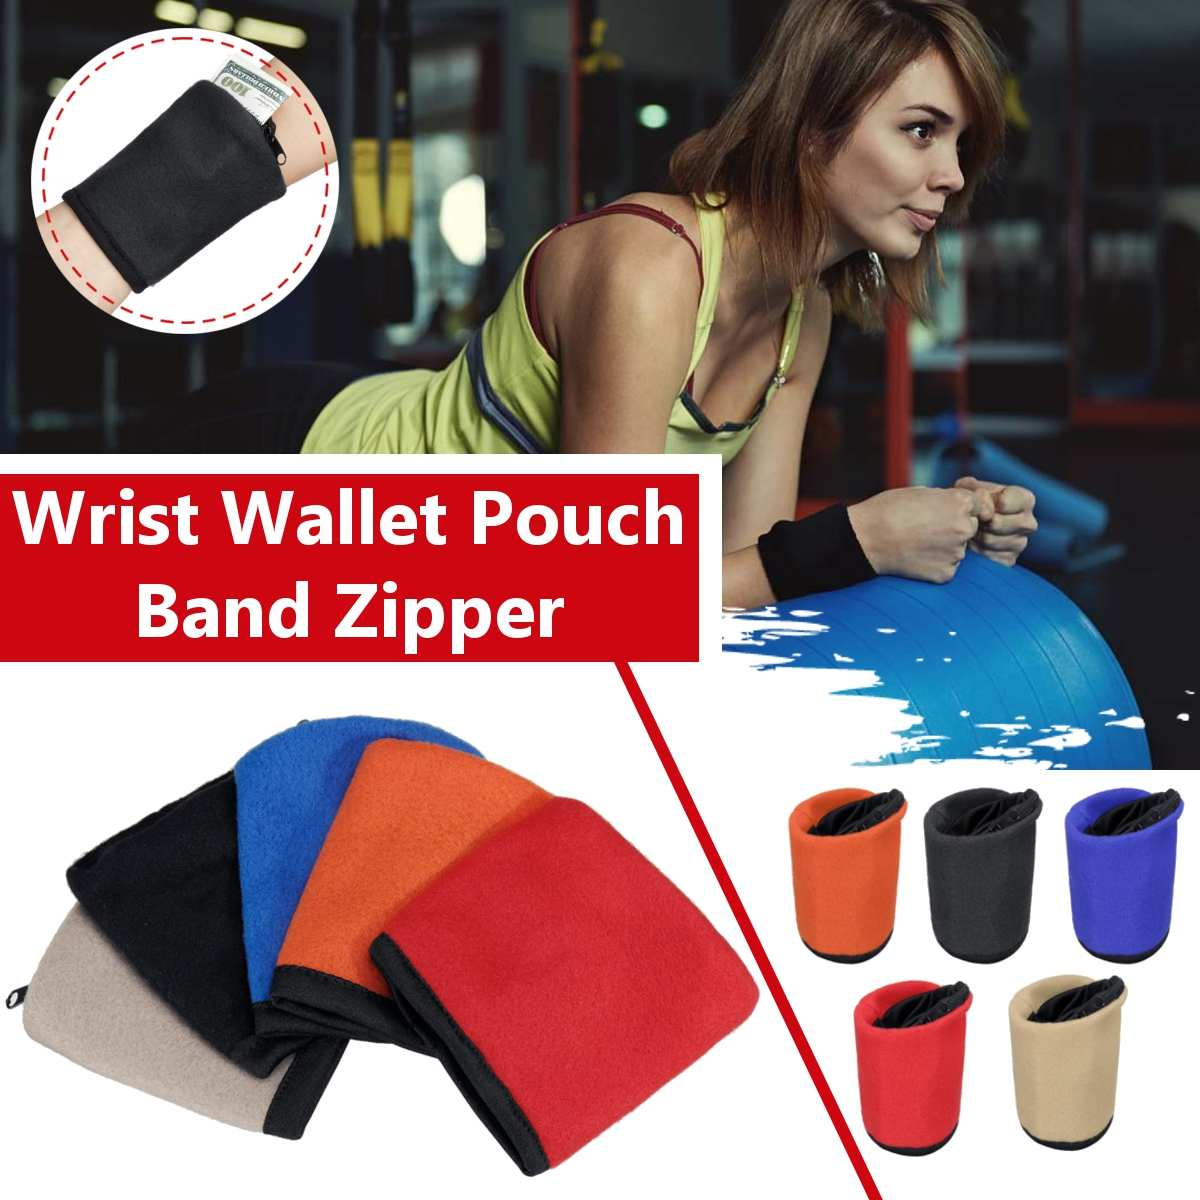 Fashion New Men Women Wrist Wallet Pouch Band Zipper Running Travel Gym Cycling Safe Coin Purse Change Sport Bag  Male